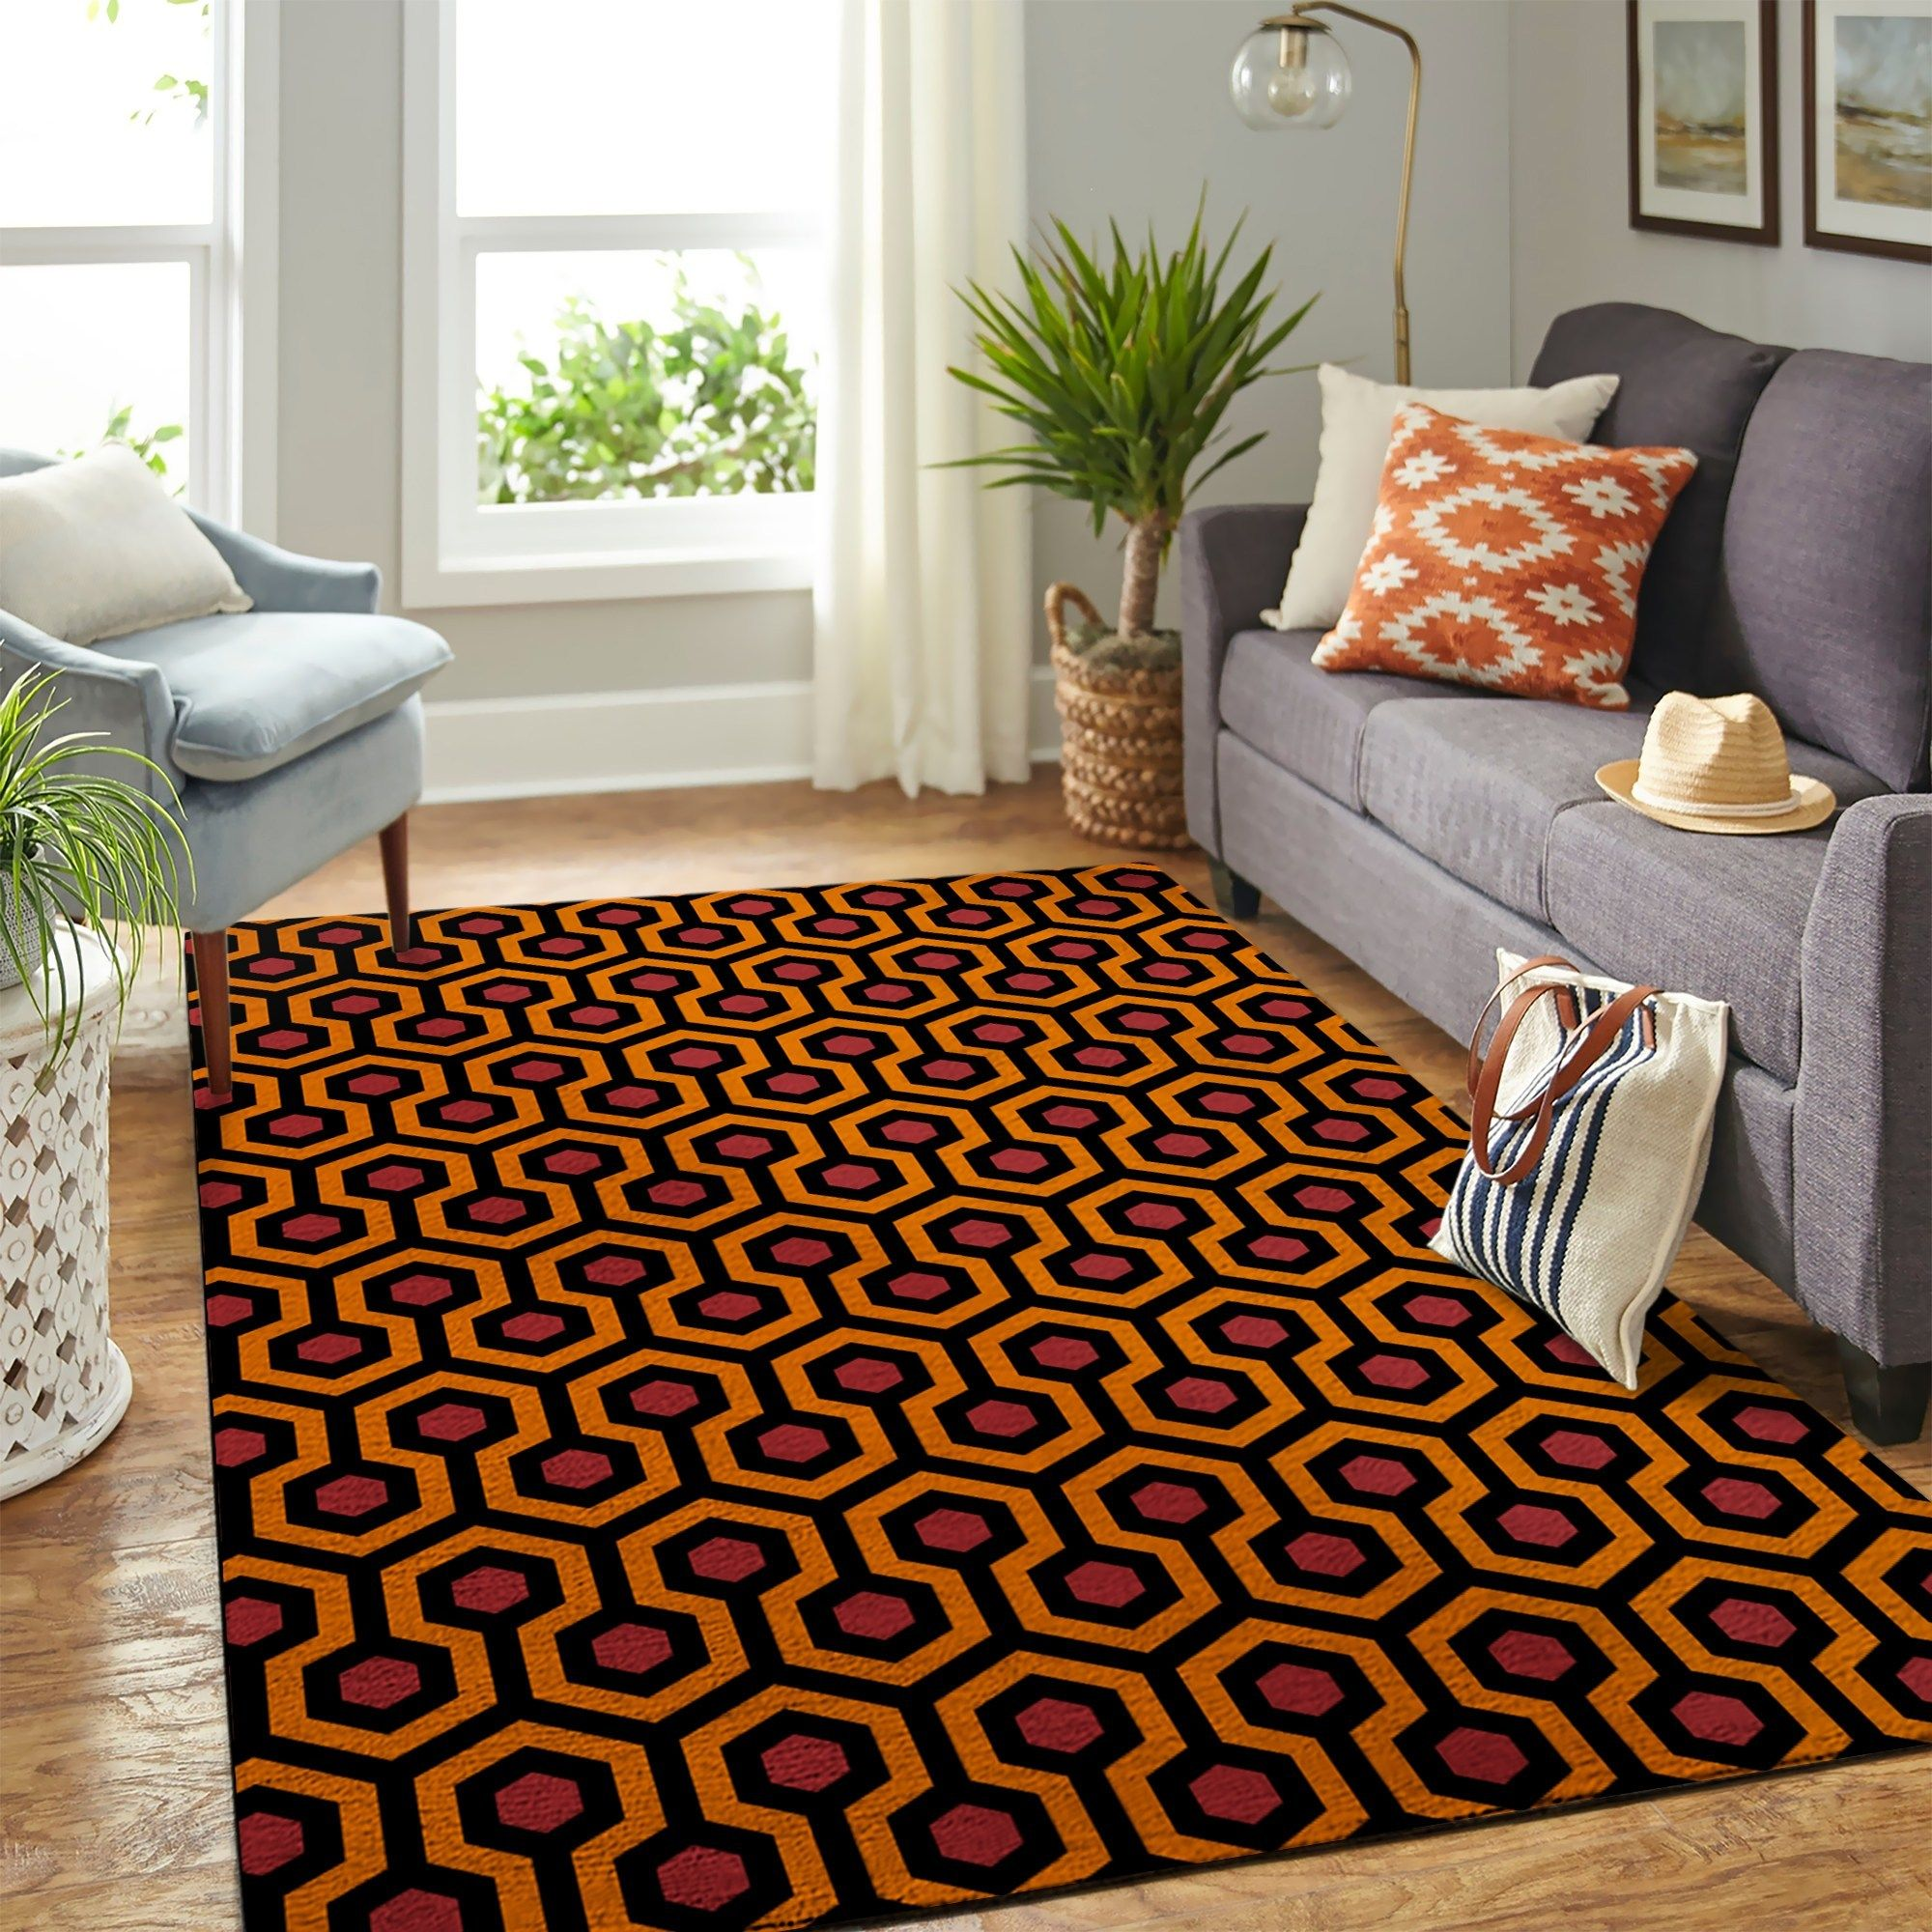 The Shining Modern Carpets Design Luxury Rug Carpet Decor